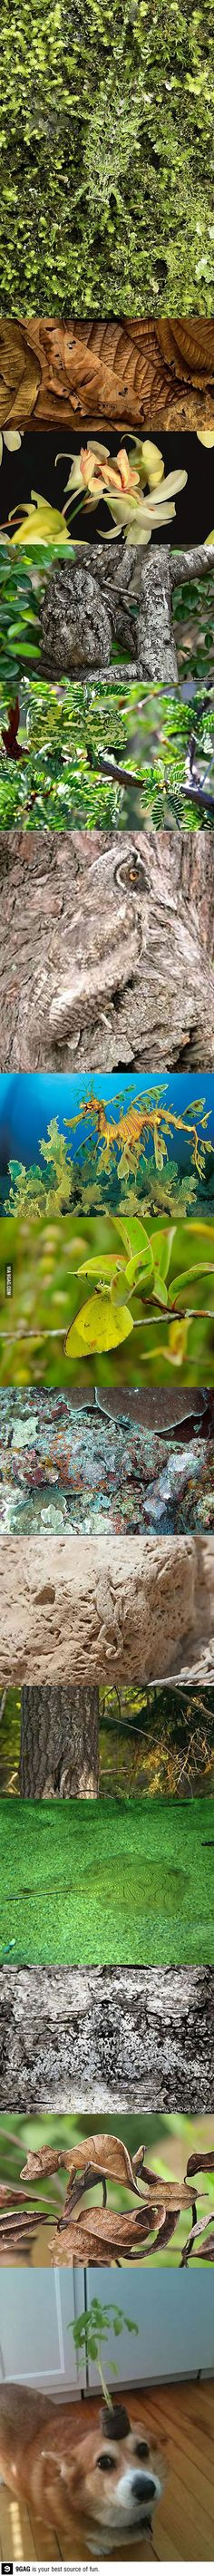 The best camouflage in nature